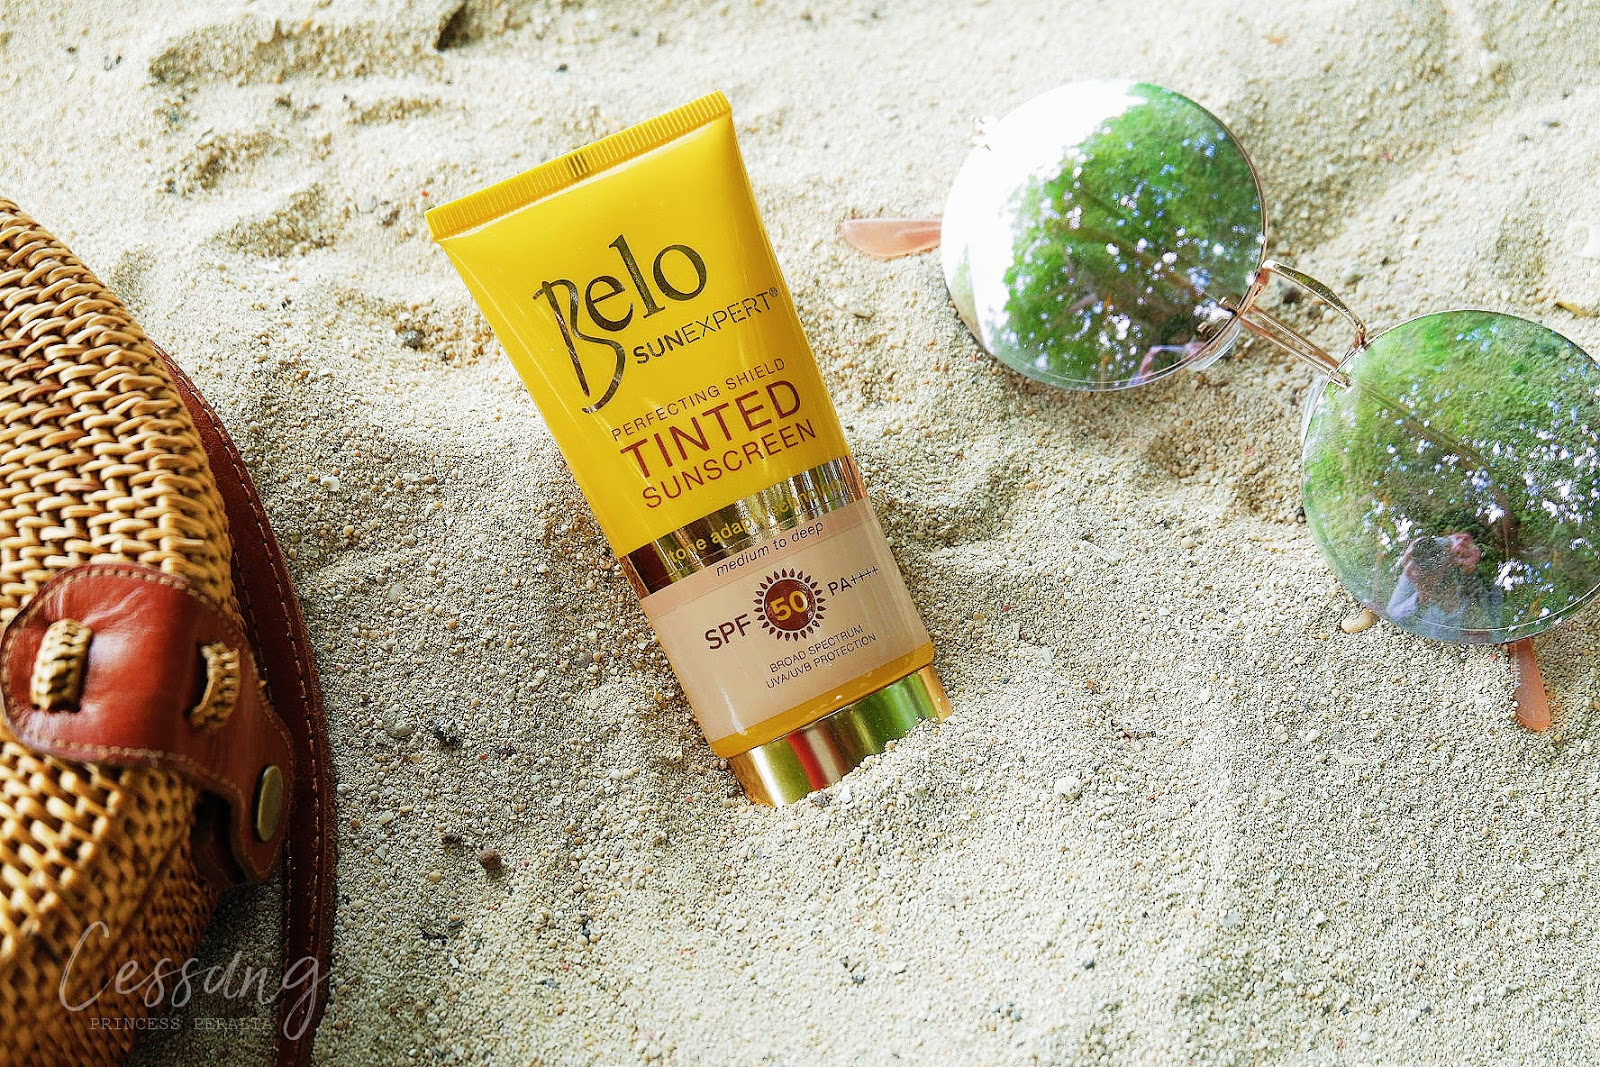 BELO SUNEXPERT PERFECTING SHIELD TINTED SUNSCREEN REVIEW